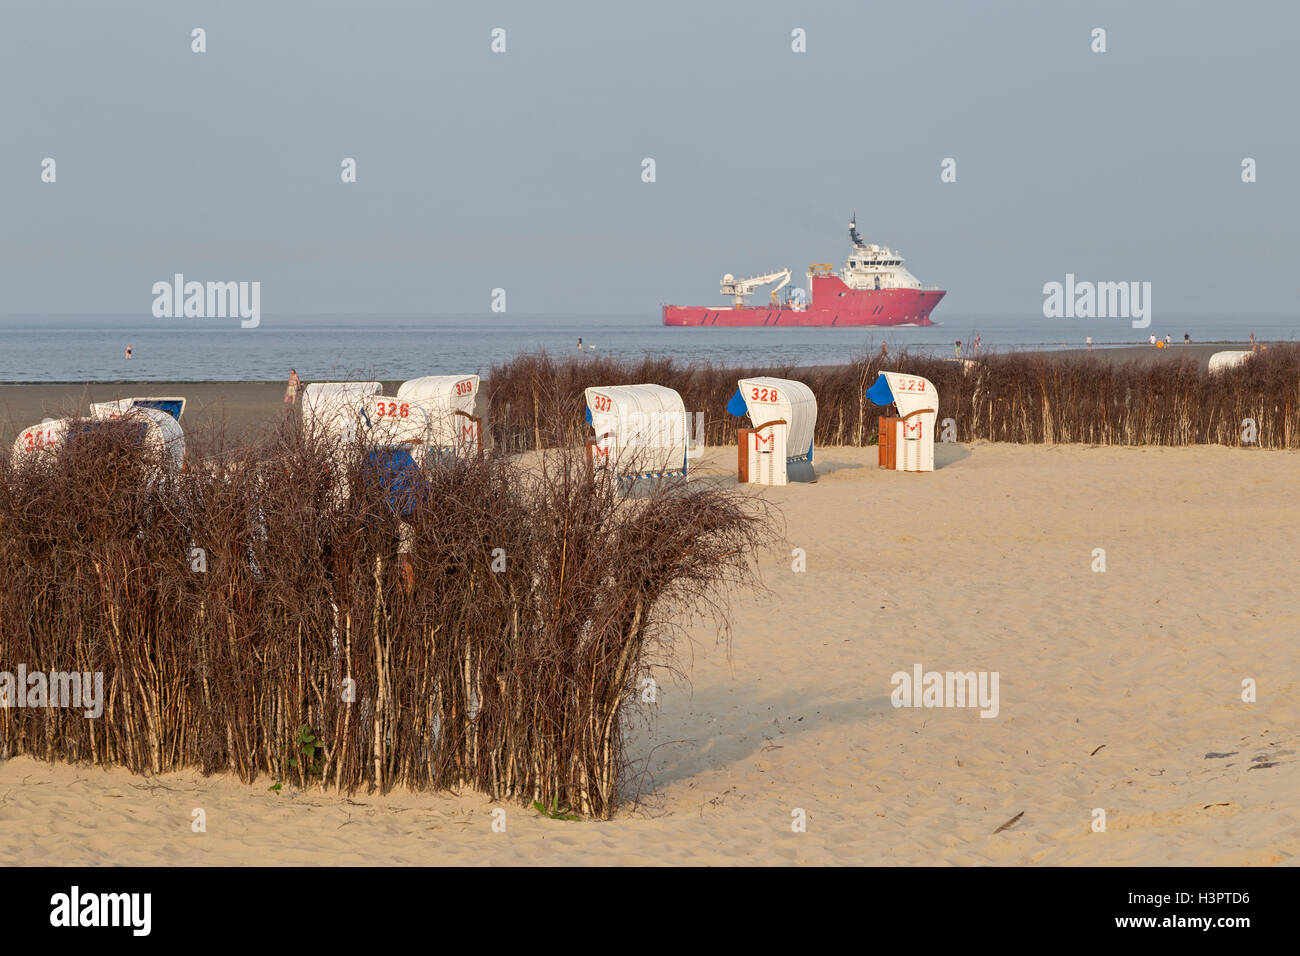 beach, Cuxhaven-Doese, Wurster Land, Lower Saxony, Germany - Stock Image